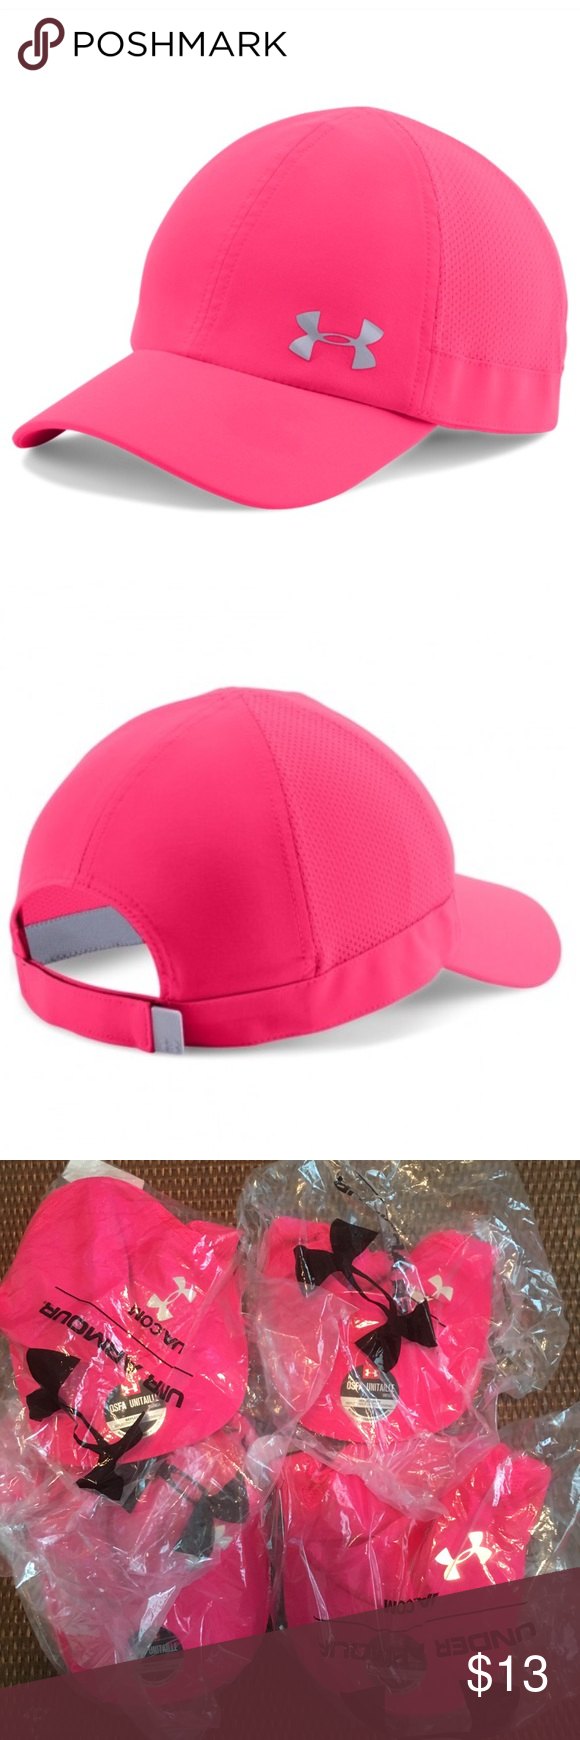 d17fa1464f6 Under Armour Women s Fly By Fast Cap Under Armour UA Fly Fast Cap Women s  Running Headwear